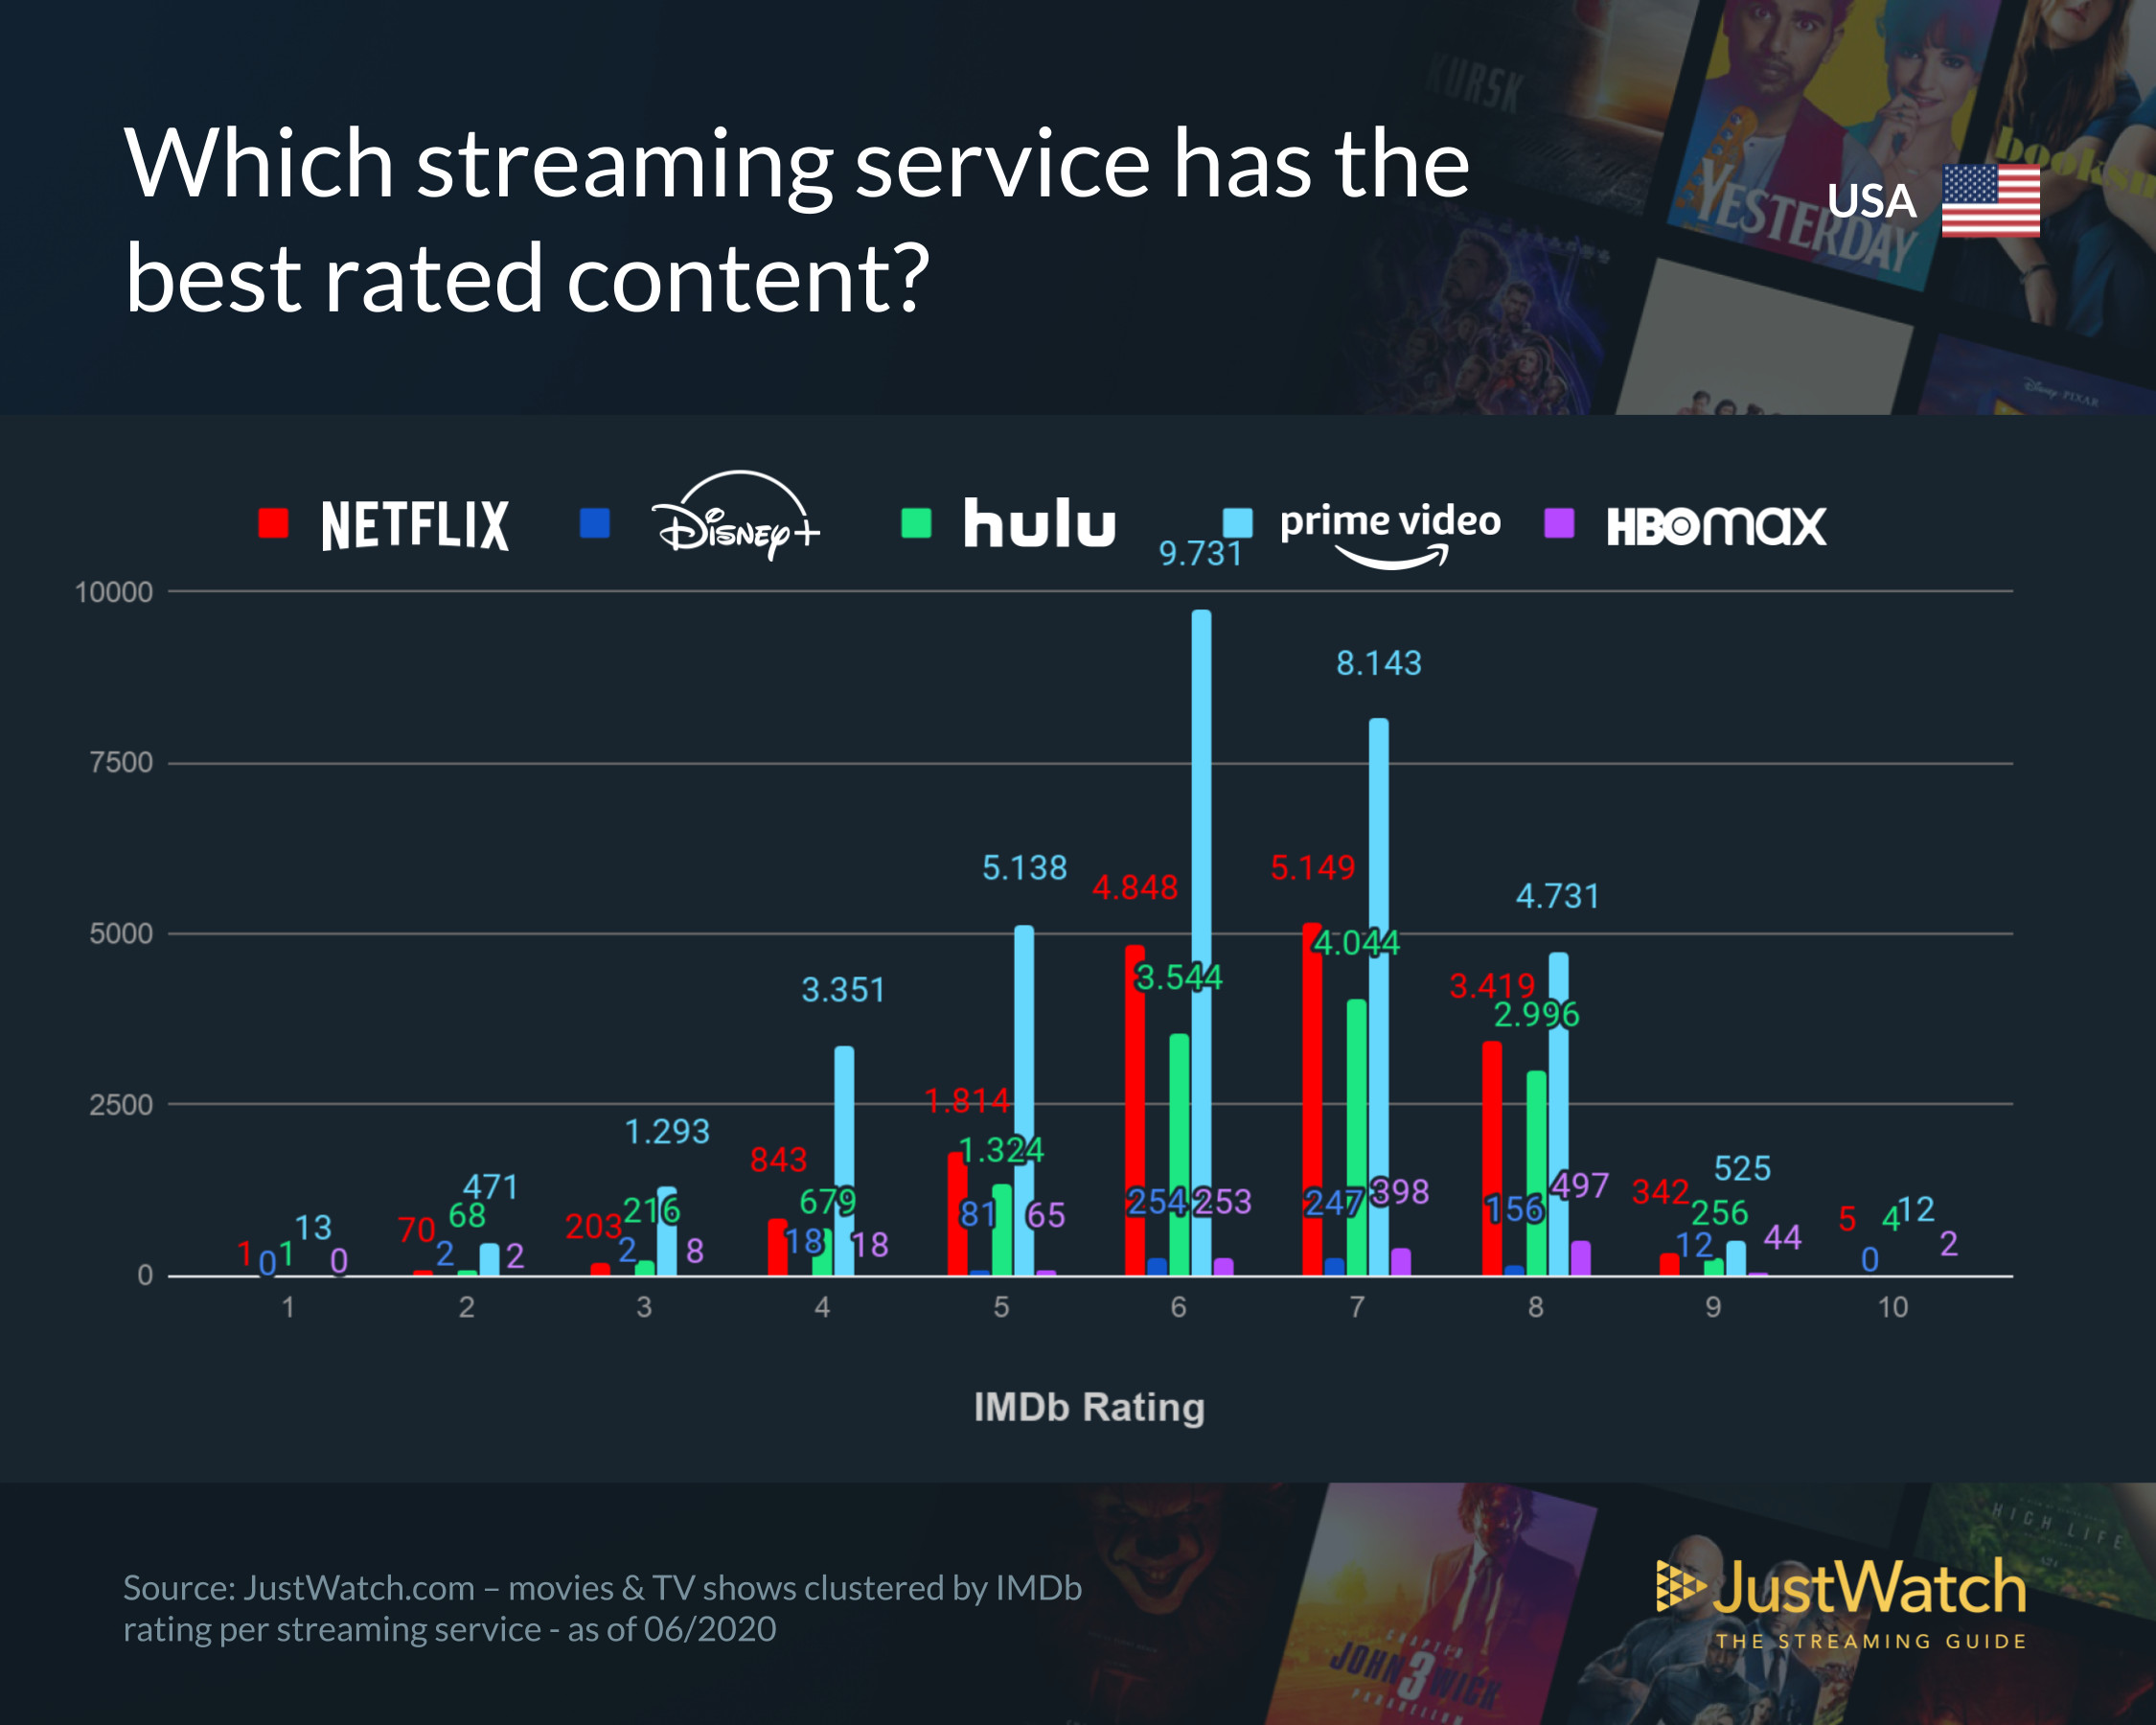 A graph showing IMDb ratings of content in the US Market with data from JustWatch for June 2020